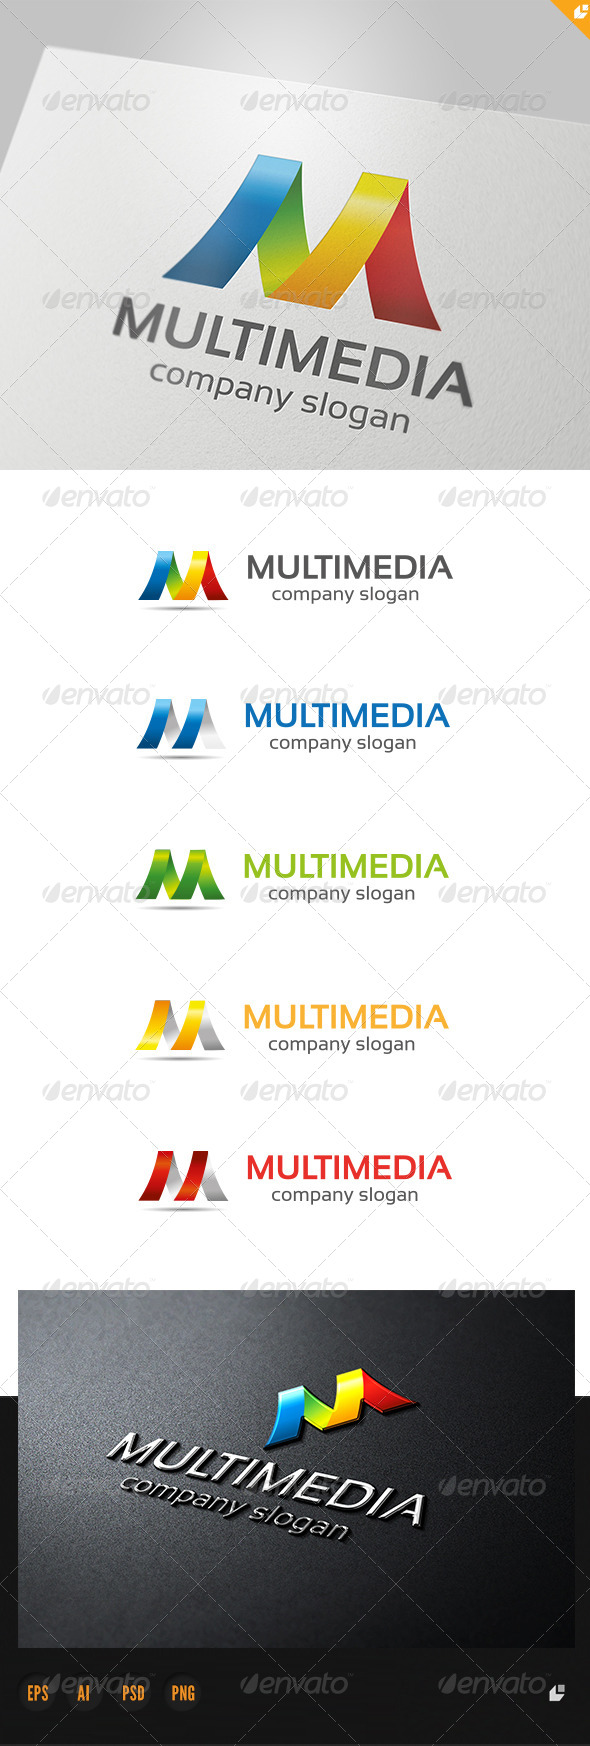 Multimedia Logo - 3d Abstract